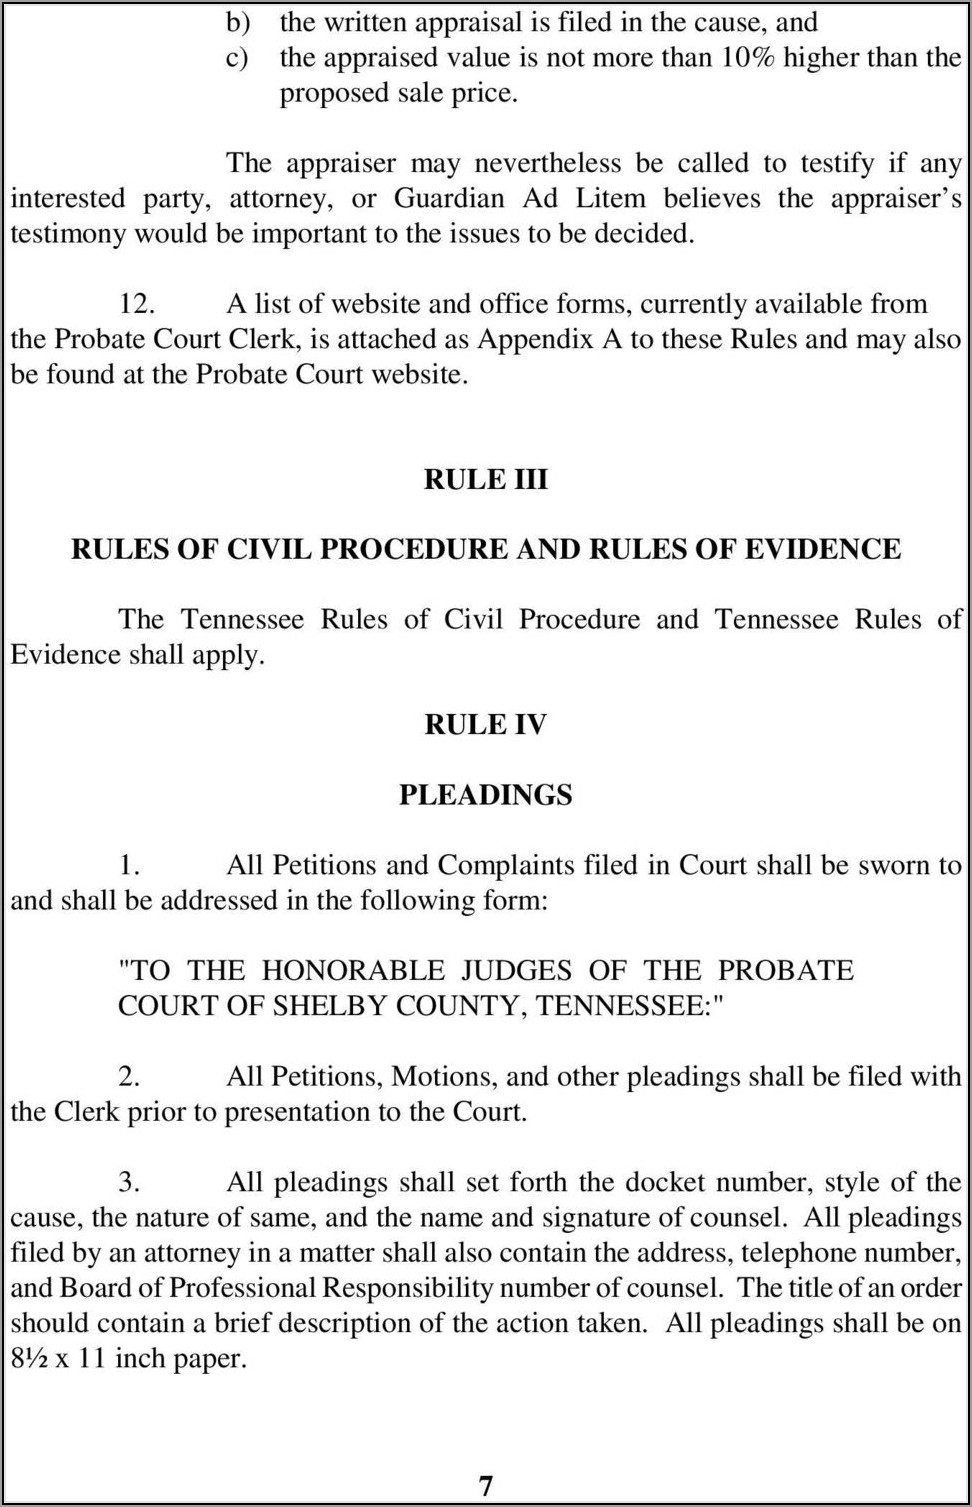 Shelby County Circuit Court Forms